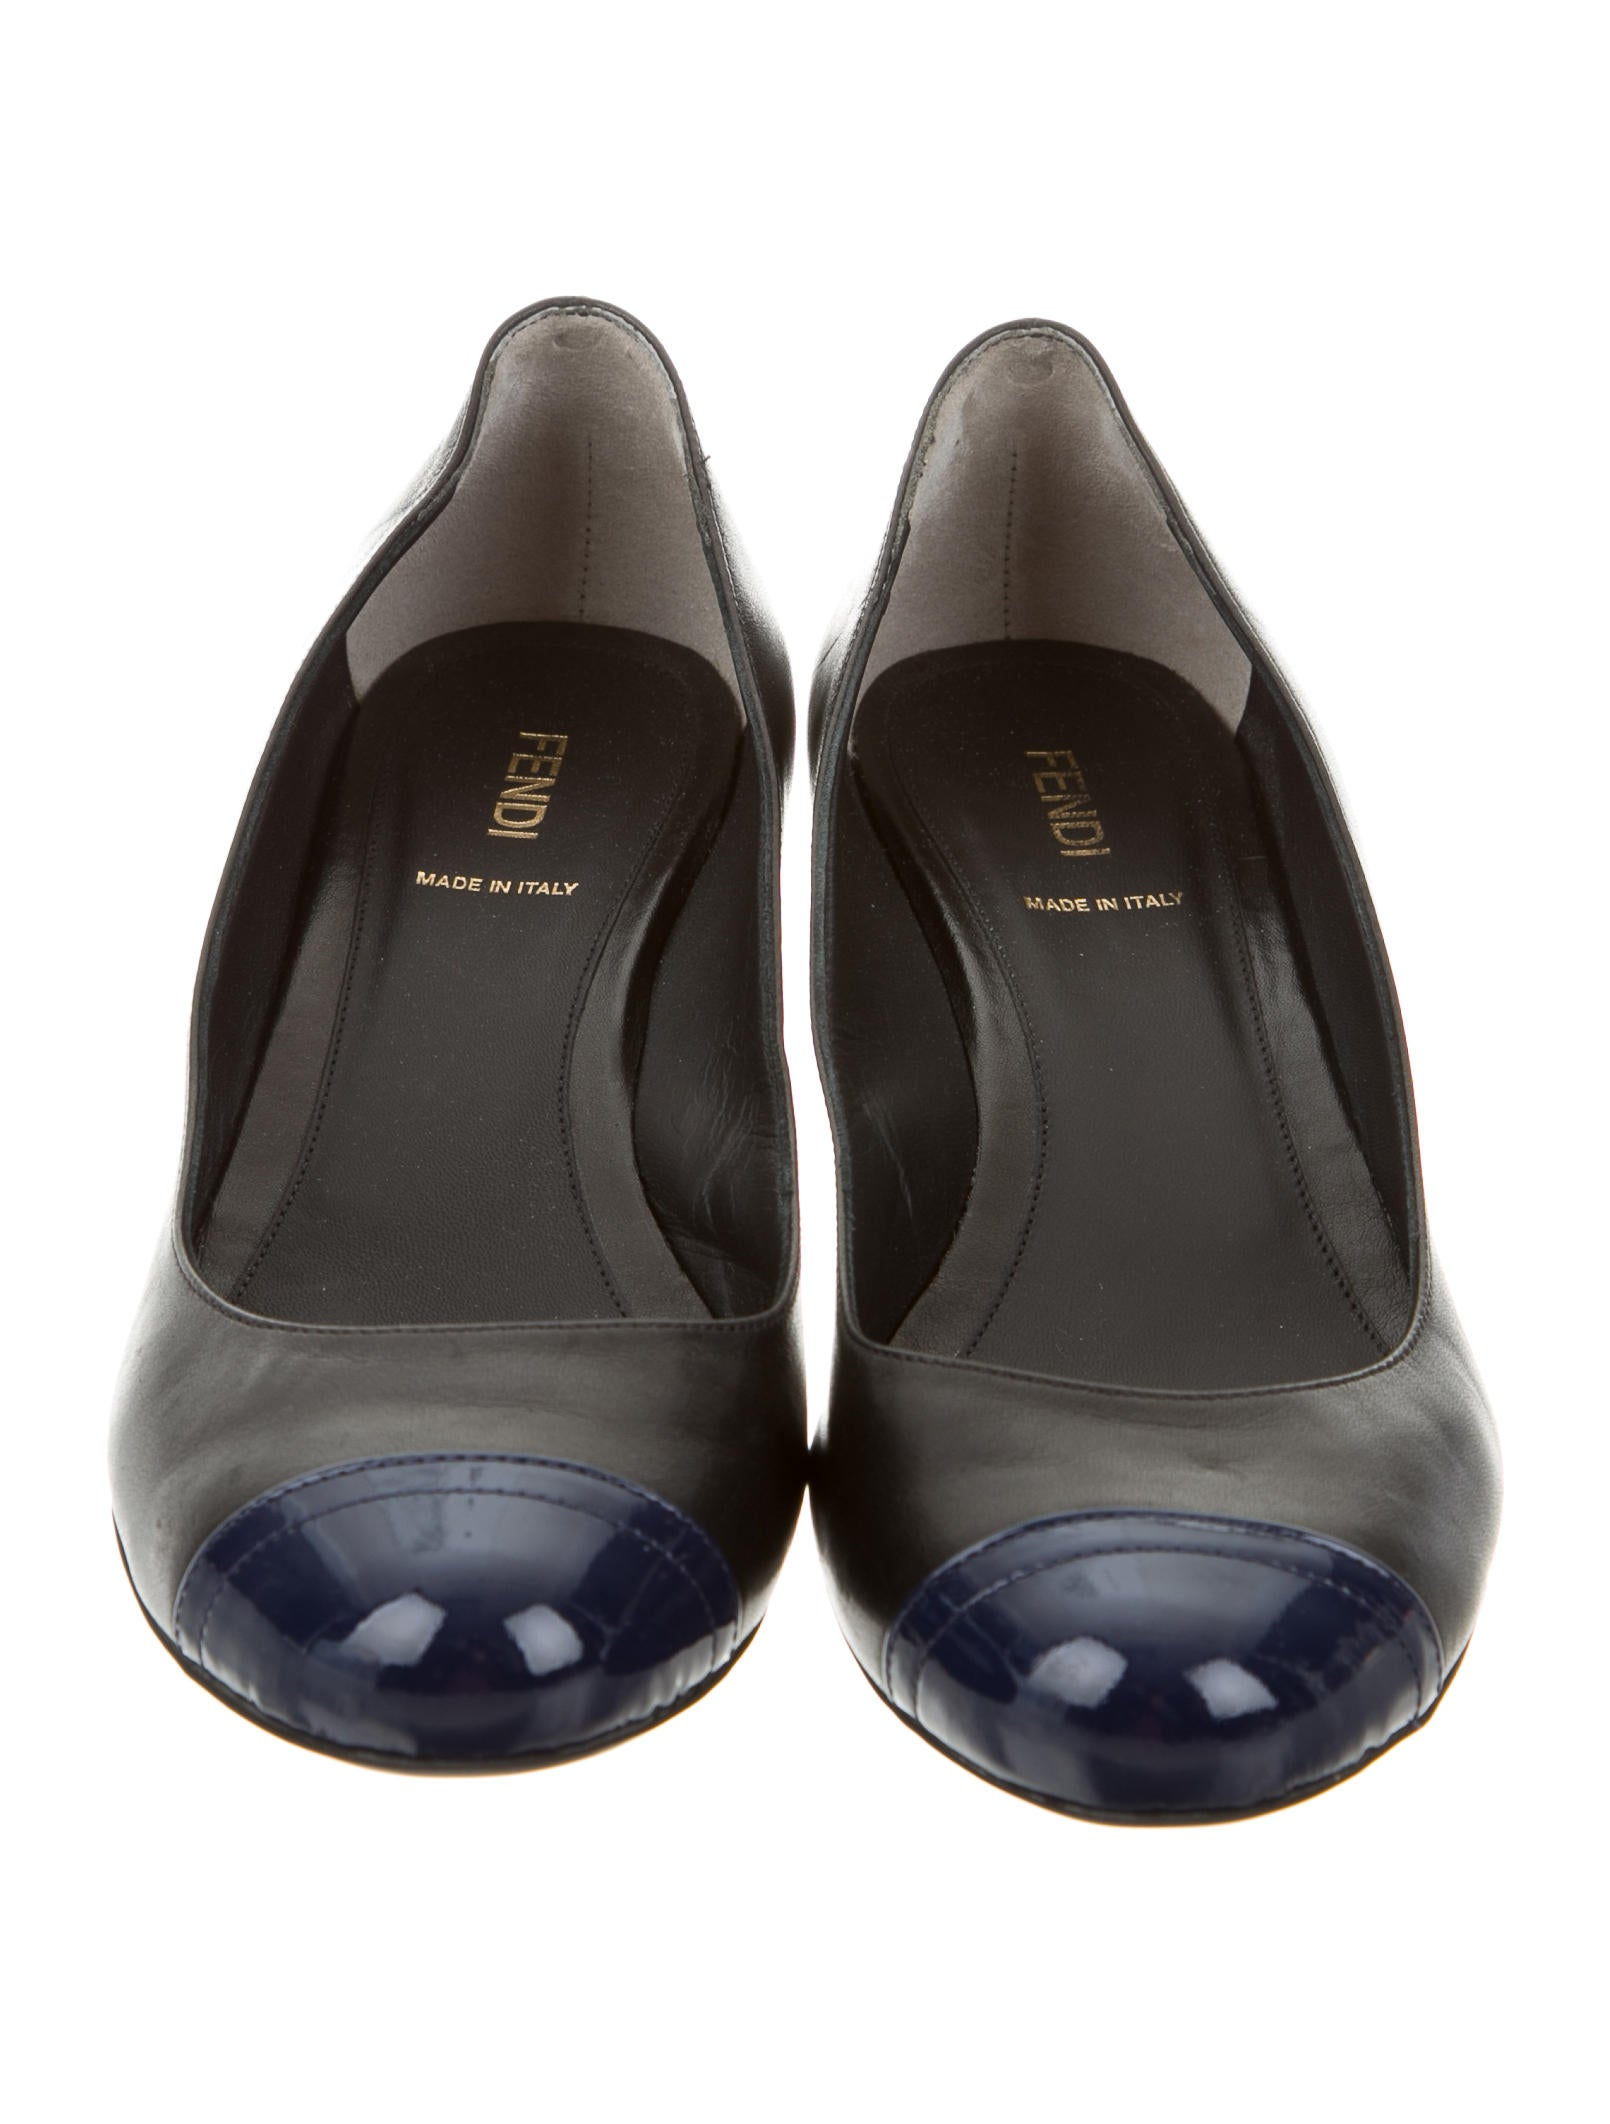 Fendi Leather Cap Toe Pumps Shoes FEN46214 The RealReal : FEN462143enlarged from www.therealreal.com size 1610 x 2124 jpeg 180kB